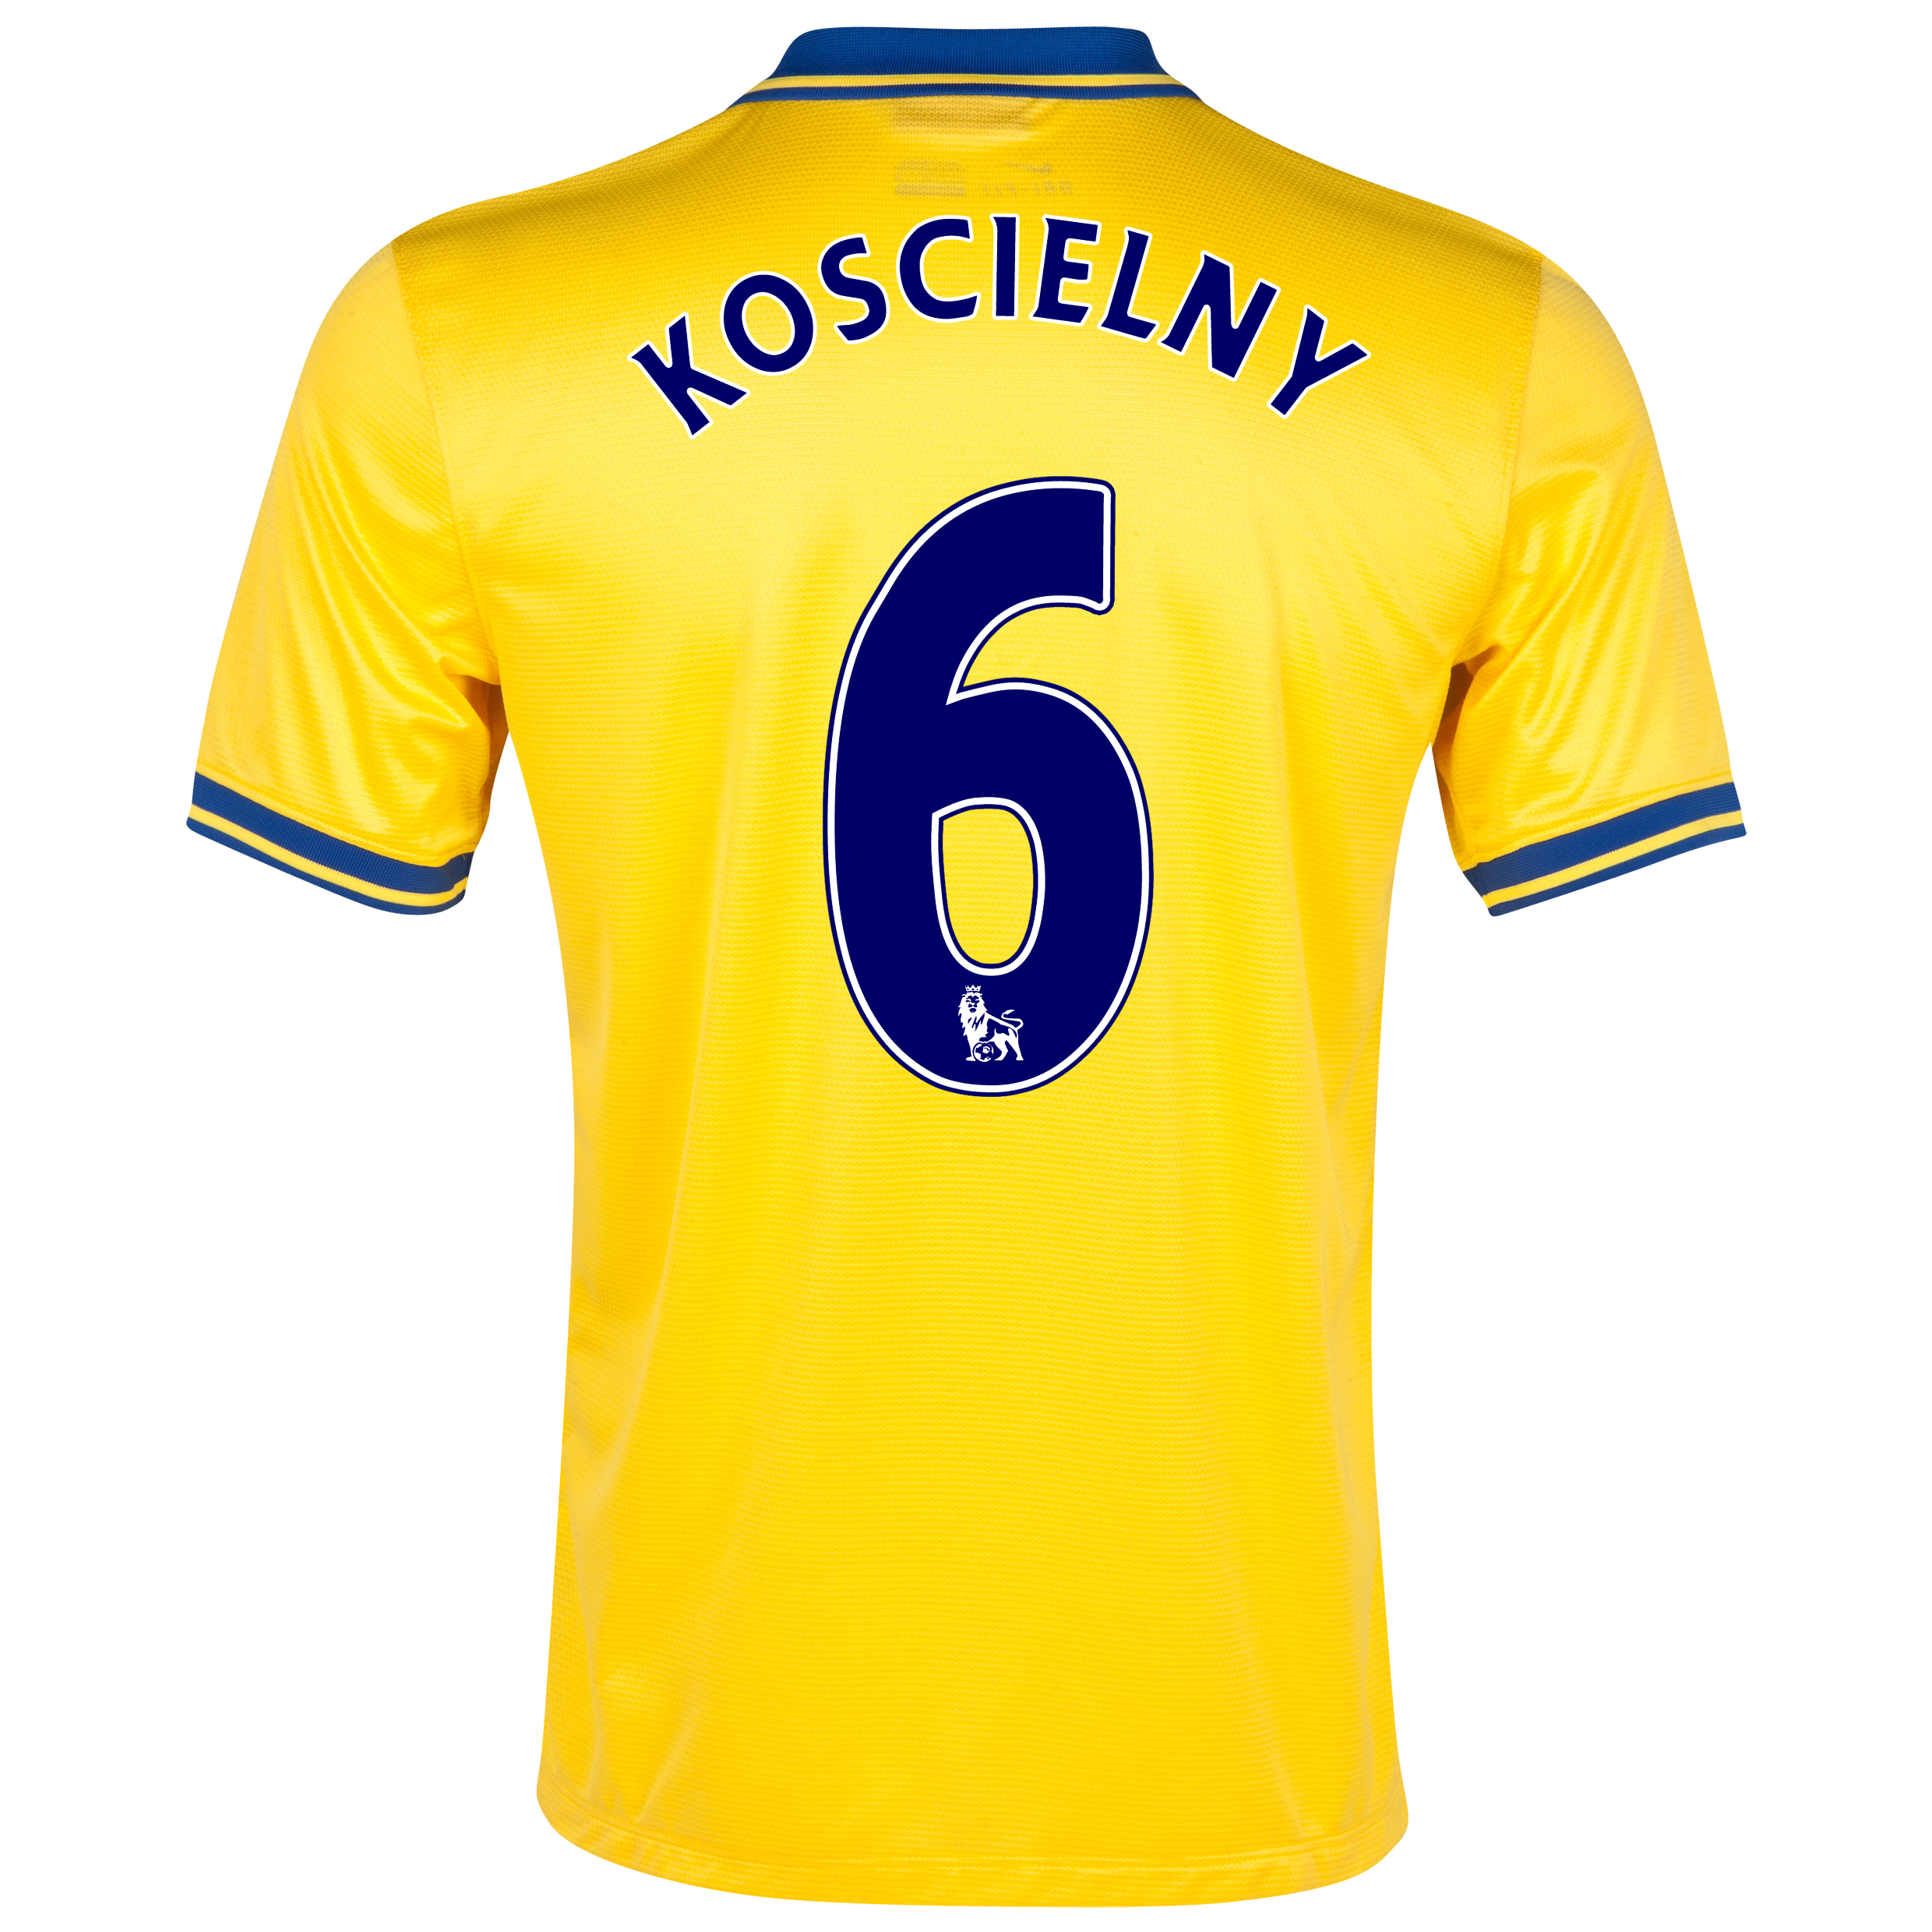 Arsenal Away Shirt 2013/14 with Koscielny 6 printing